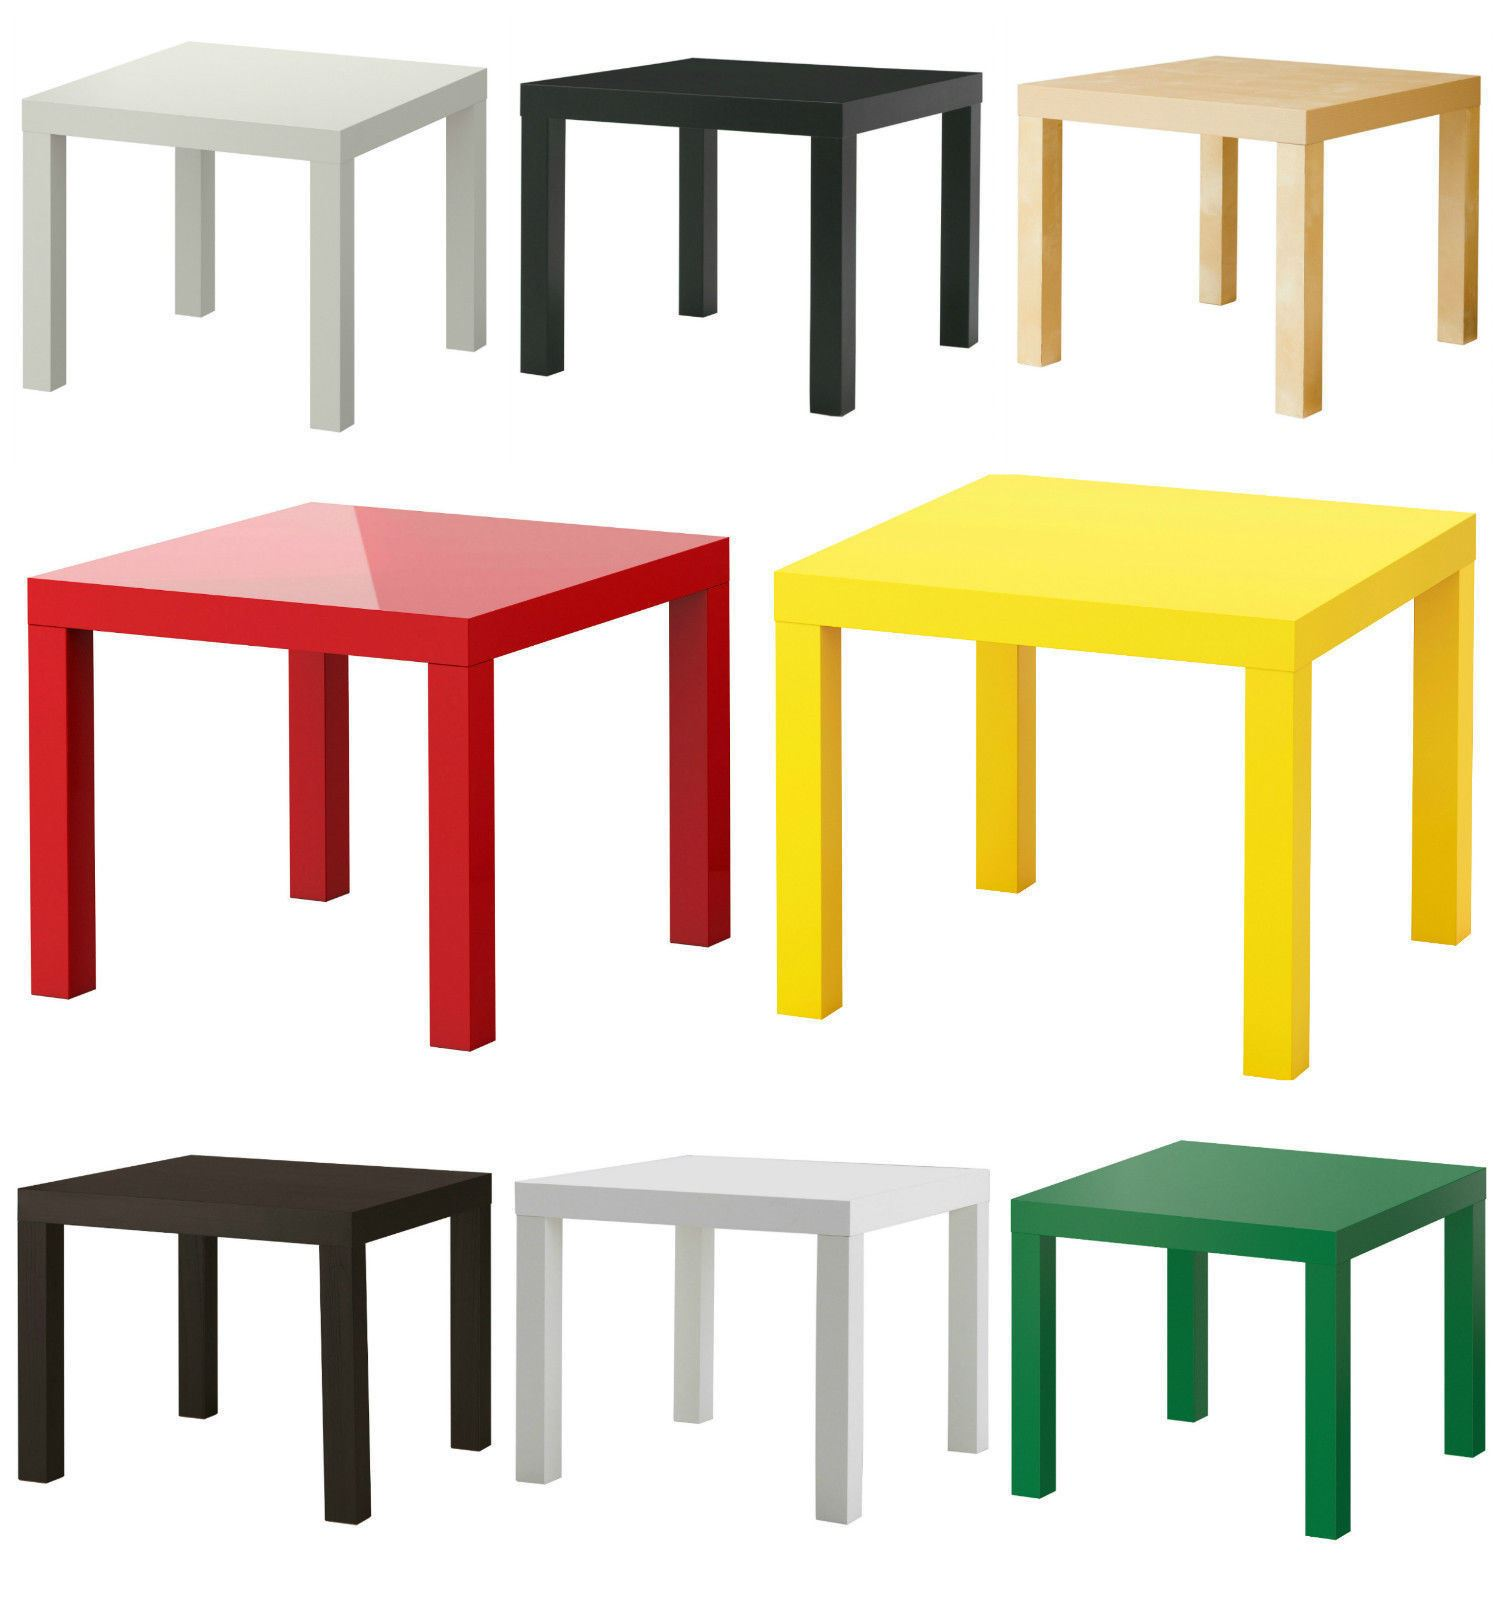 Tables D Appoint Maison Ikea Manque Cote Table Fin Display 55x55cm